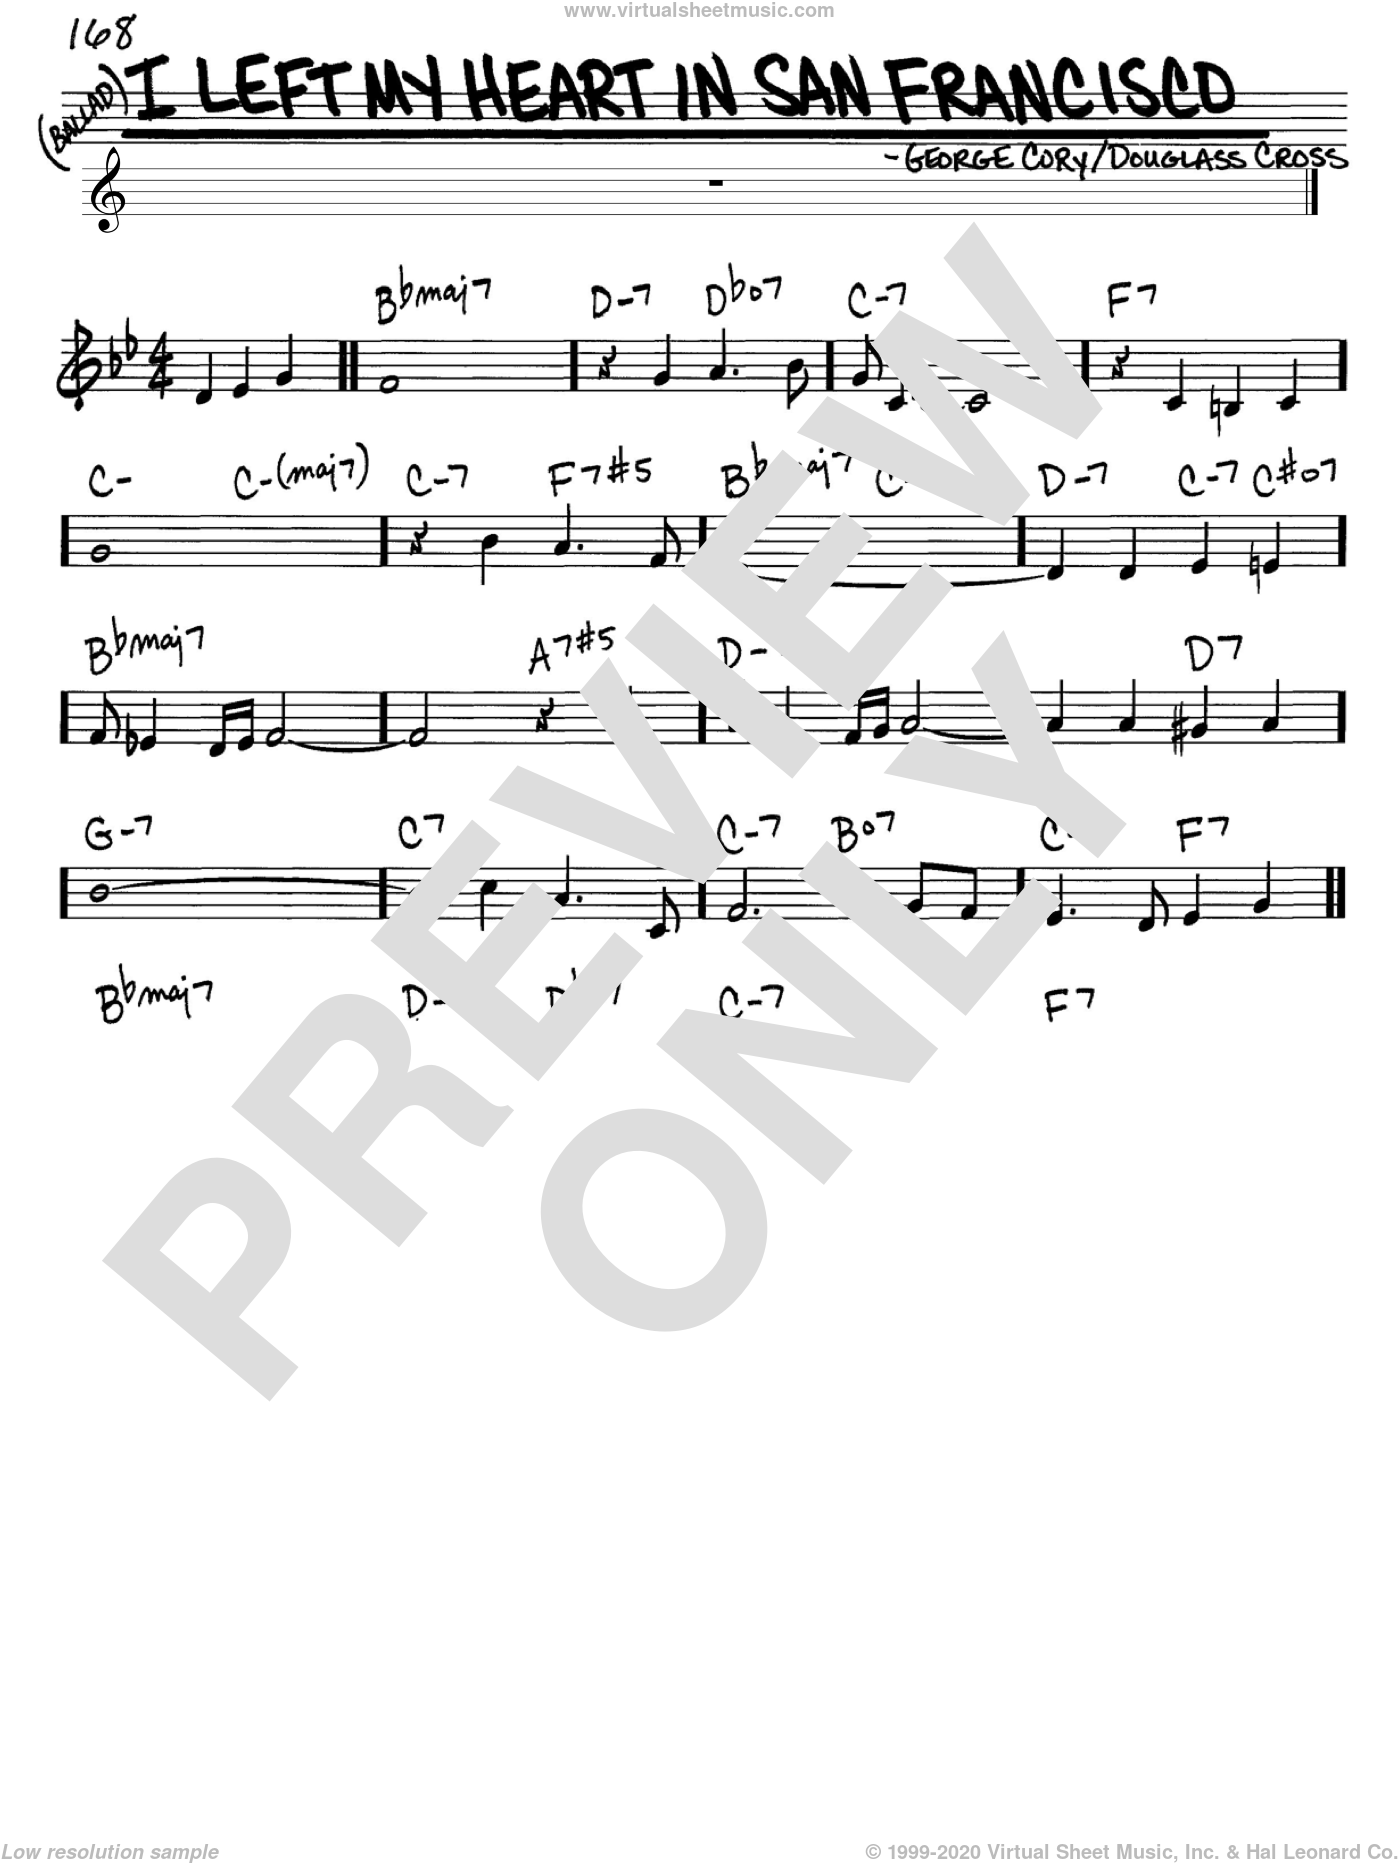 I Left My Heart In San Francisco sheet music for voice and other instruments (in C) by Tony Bennett and George Cory, intermediate. Score Image Preview.